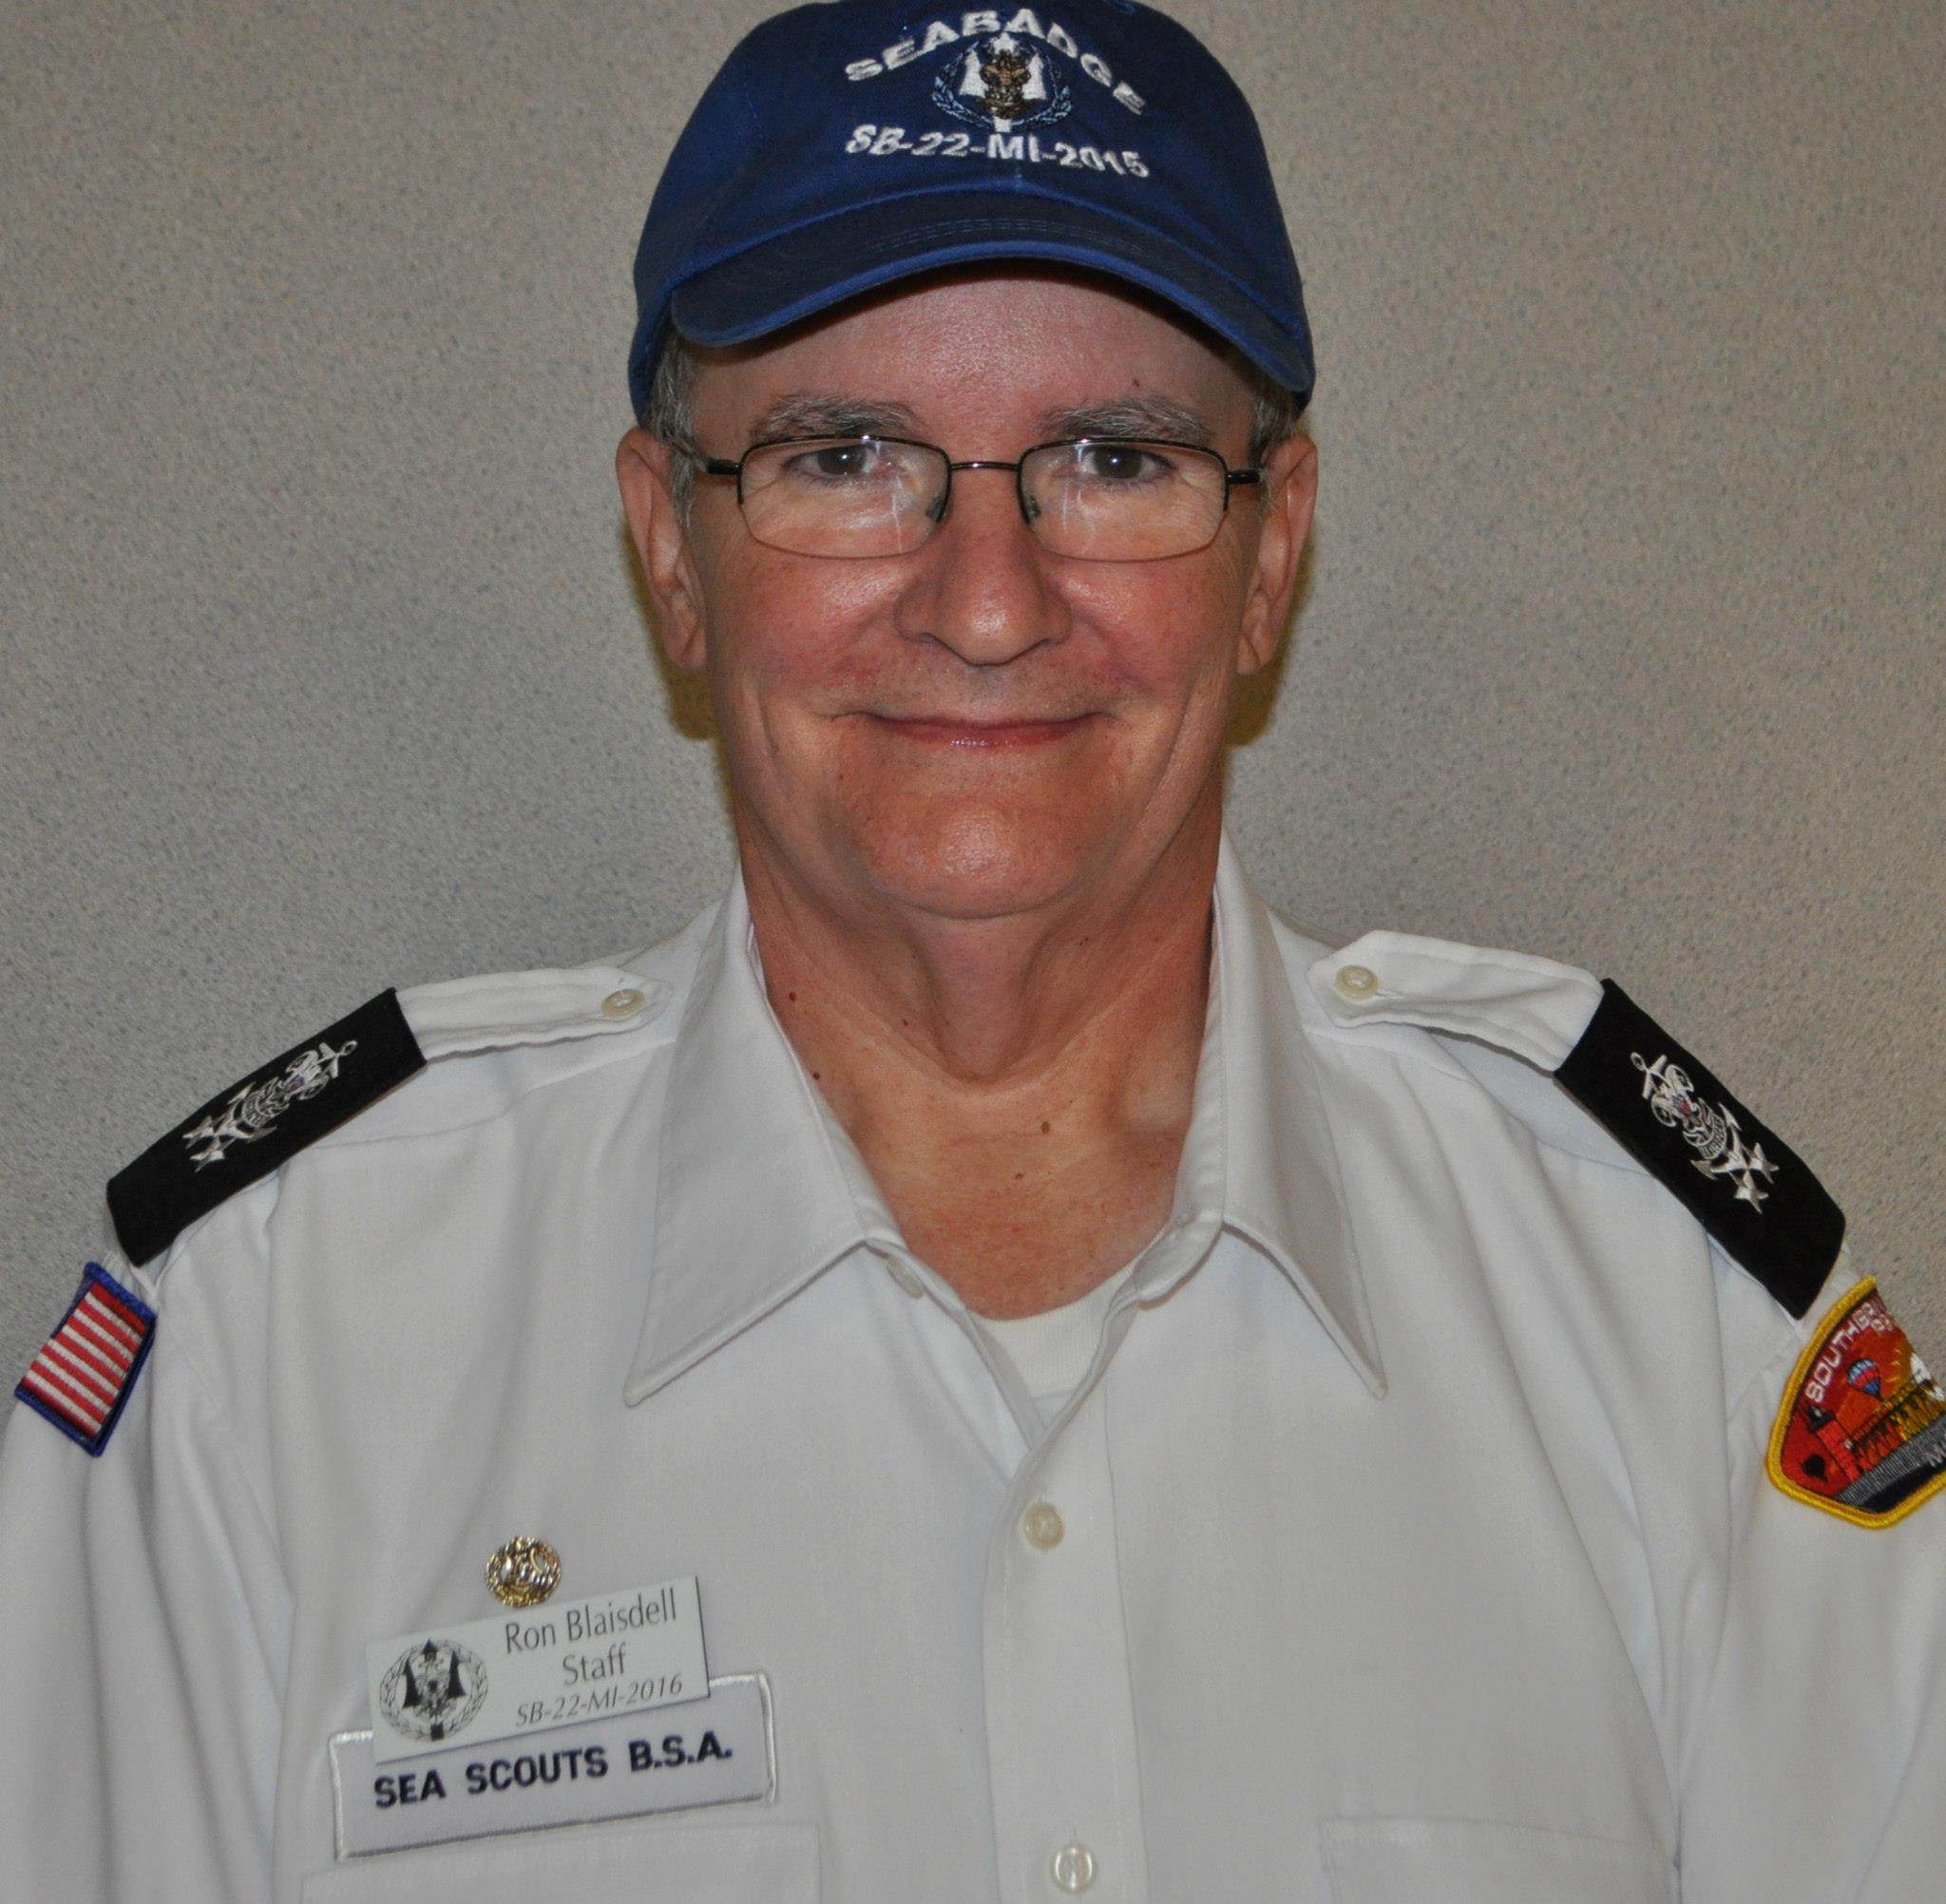 Ron Blaisdell - Central Region Sea Scout Service Committee Member - Communications